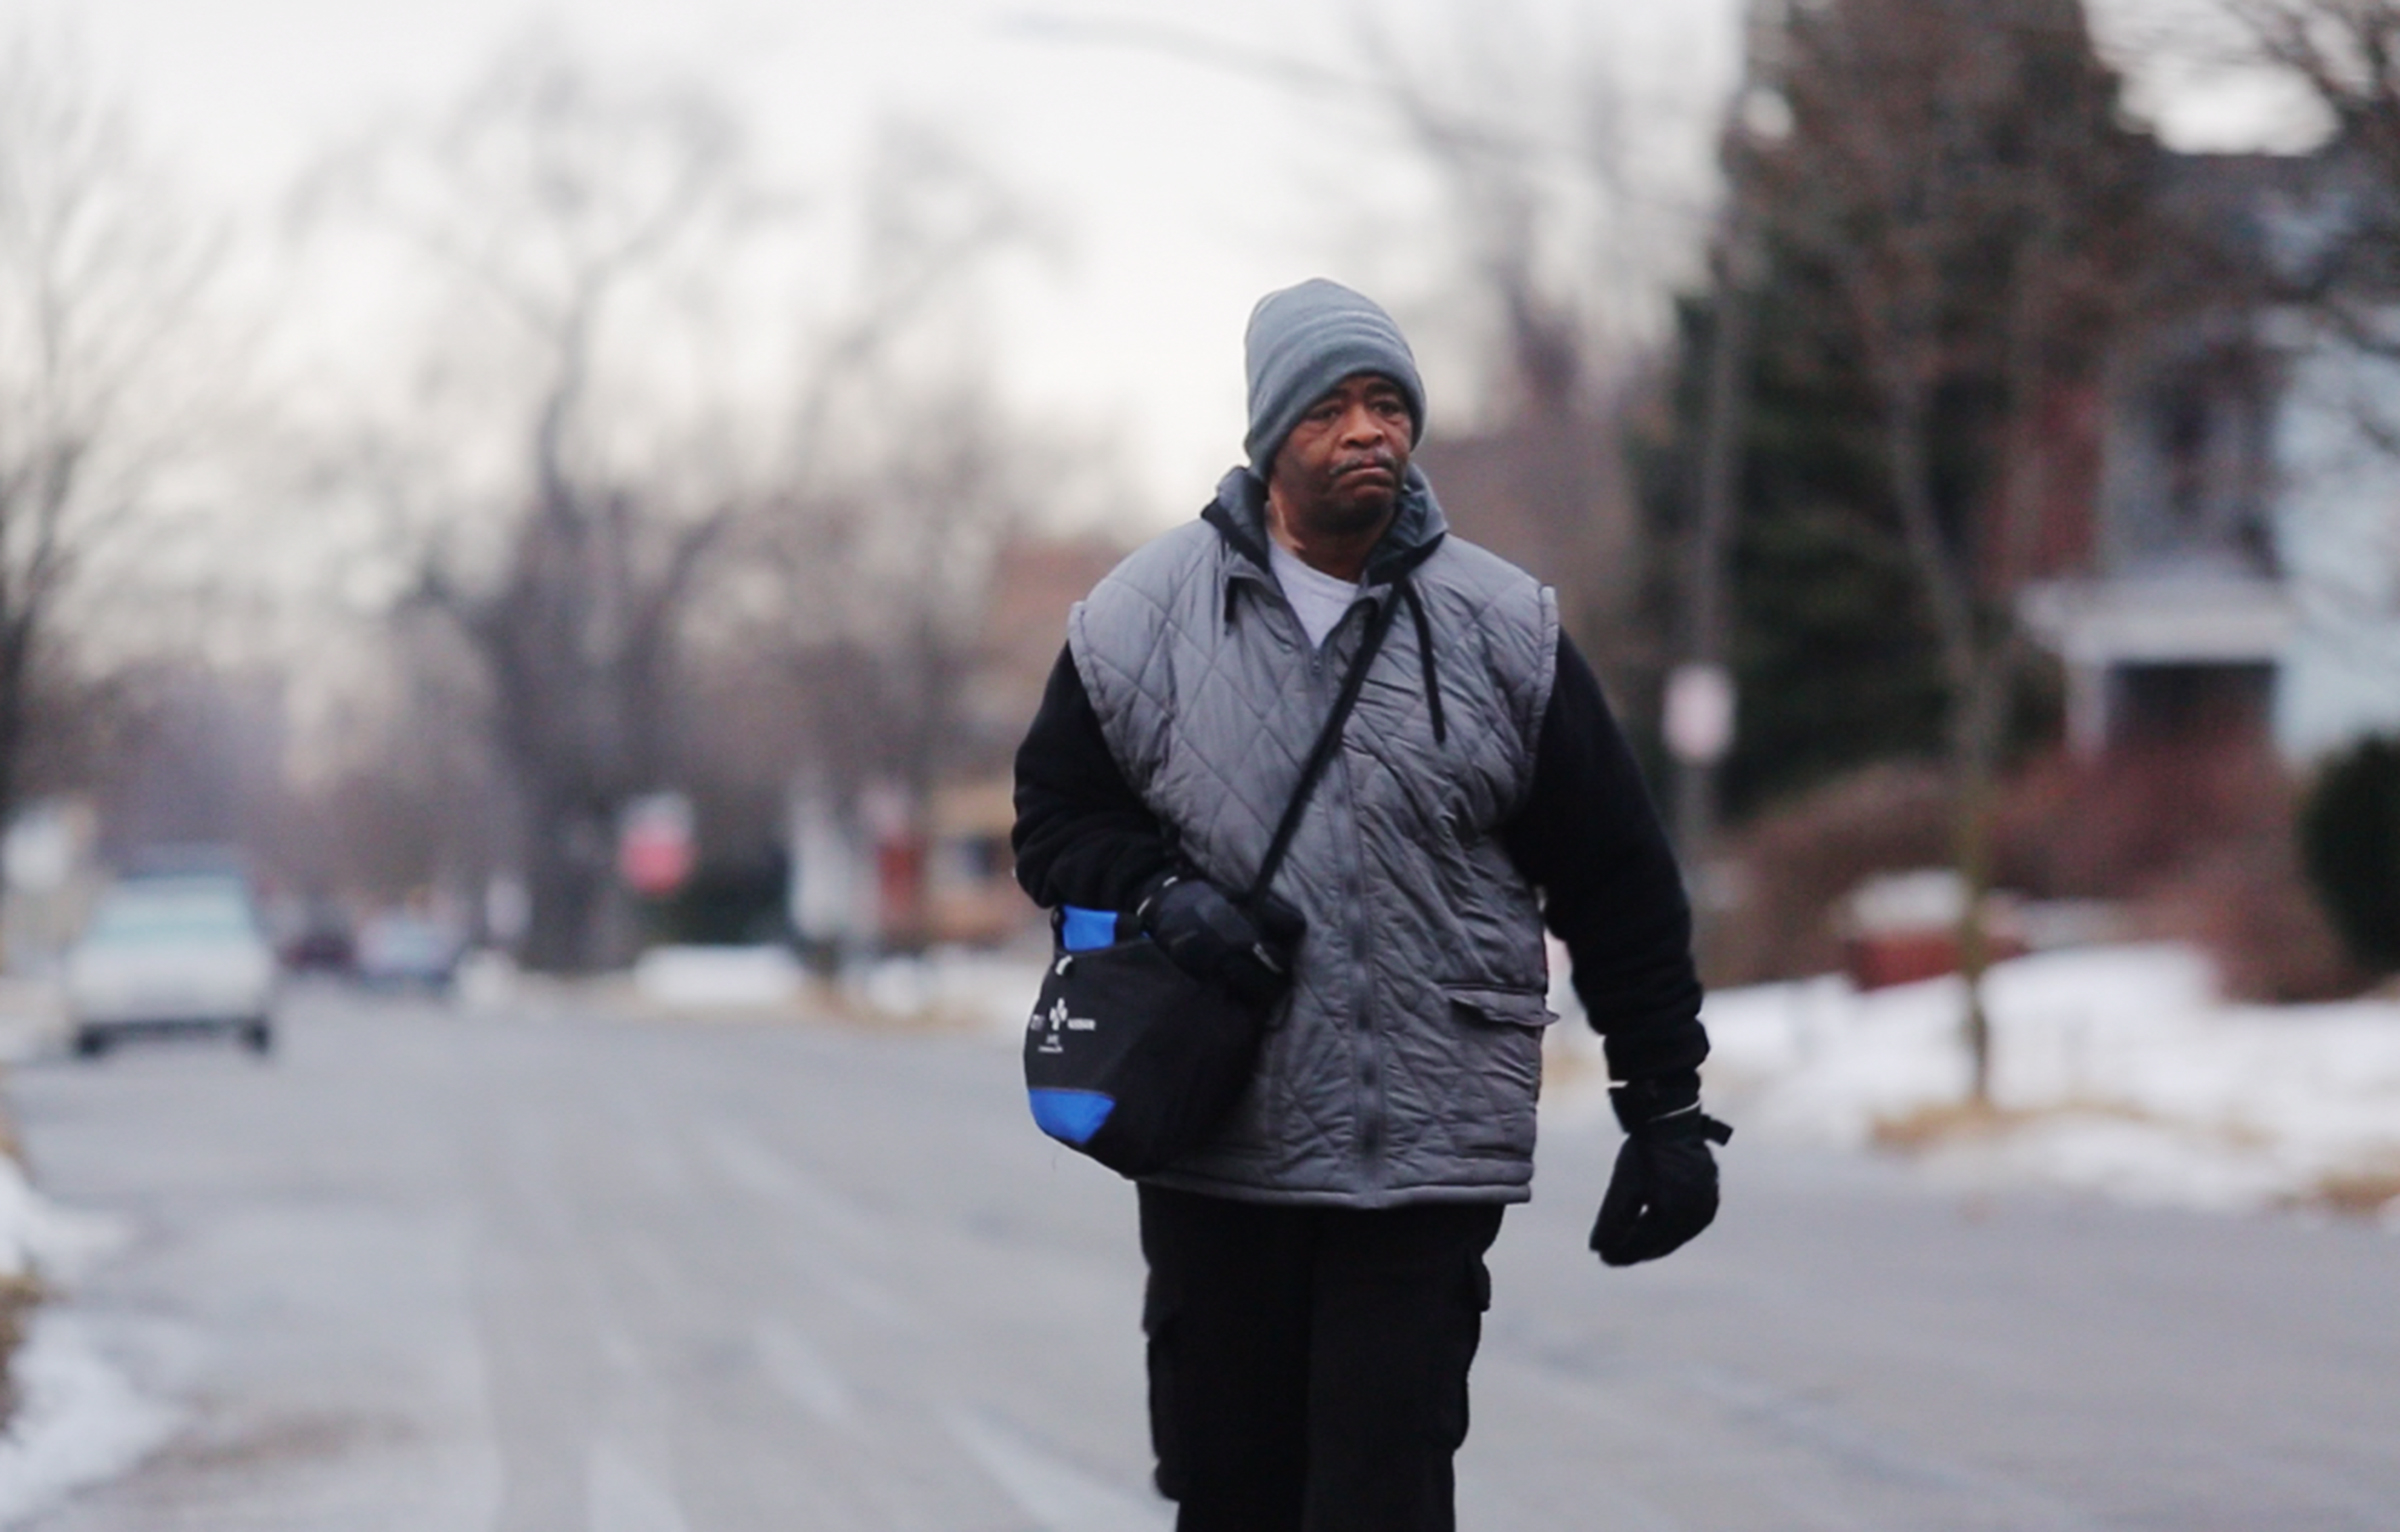 In this Jan. 29, 2015, photo, James Robertson, 56, of Detroit, walks toward Woodward Aveune in Detroit to catch his morning bus to Somerset Collection in Troy before walking to his job at Schain Mold Engineering in Rochester Hills. Getting to and from his factory job 23 miles away in Rochester Hills, he'll take a bus partway there and partway home and walk 21 miles according to the Detroit Free Press